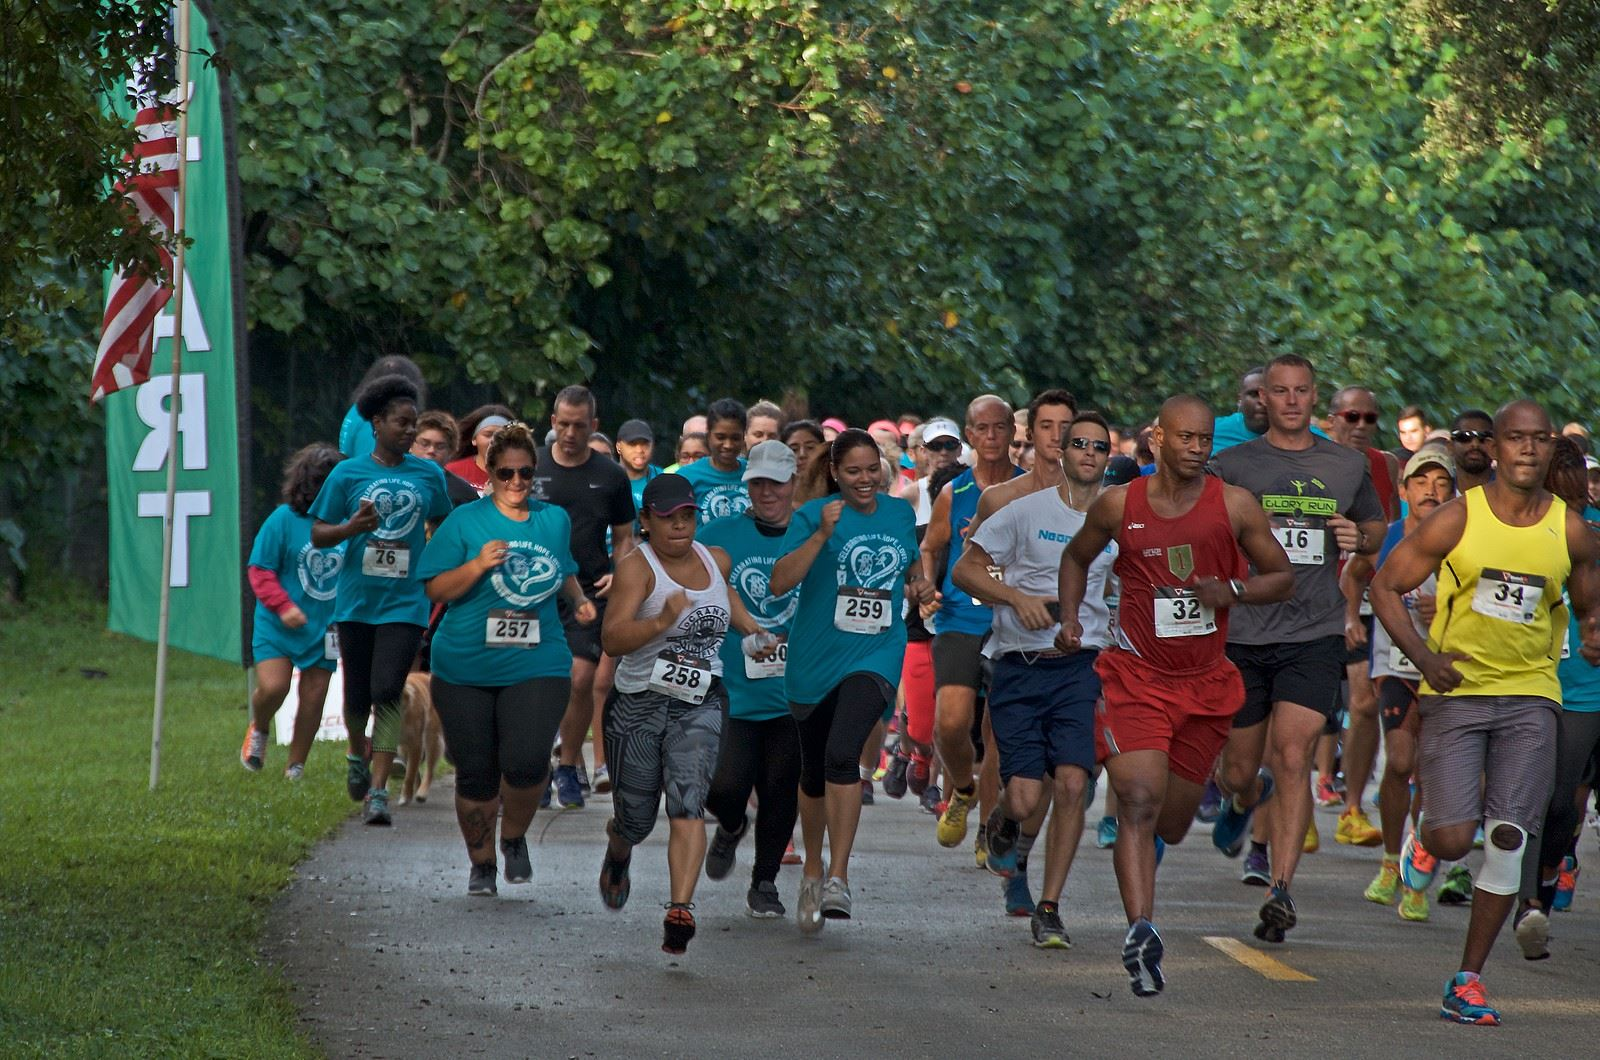 teal 14 1 - Florida Teal 5K Run/ Fun Walk 2016